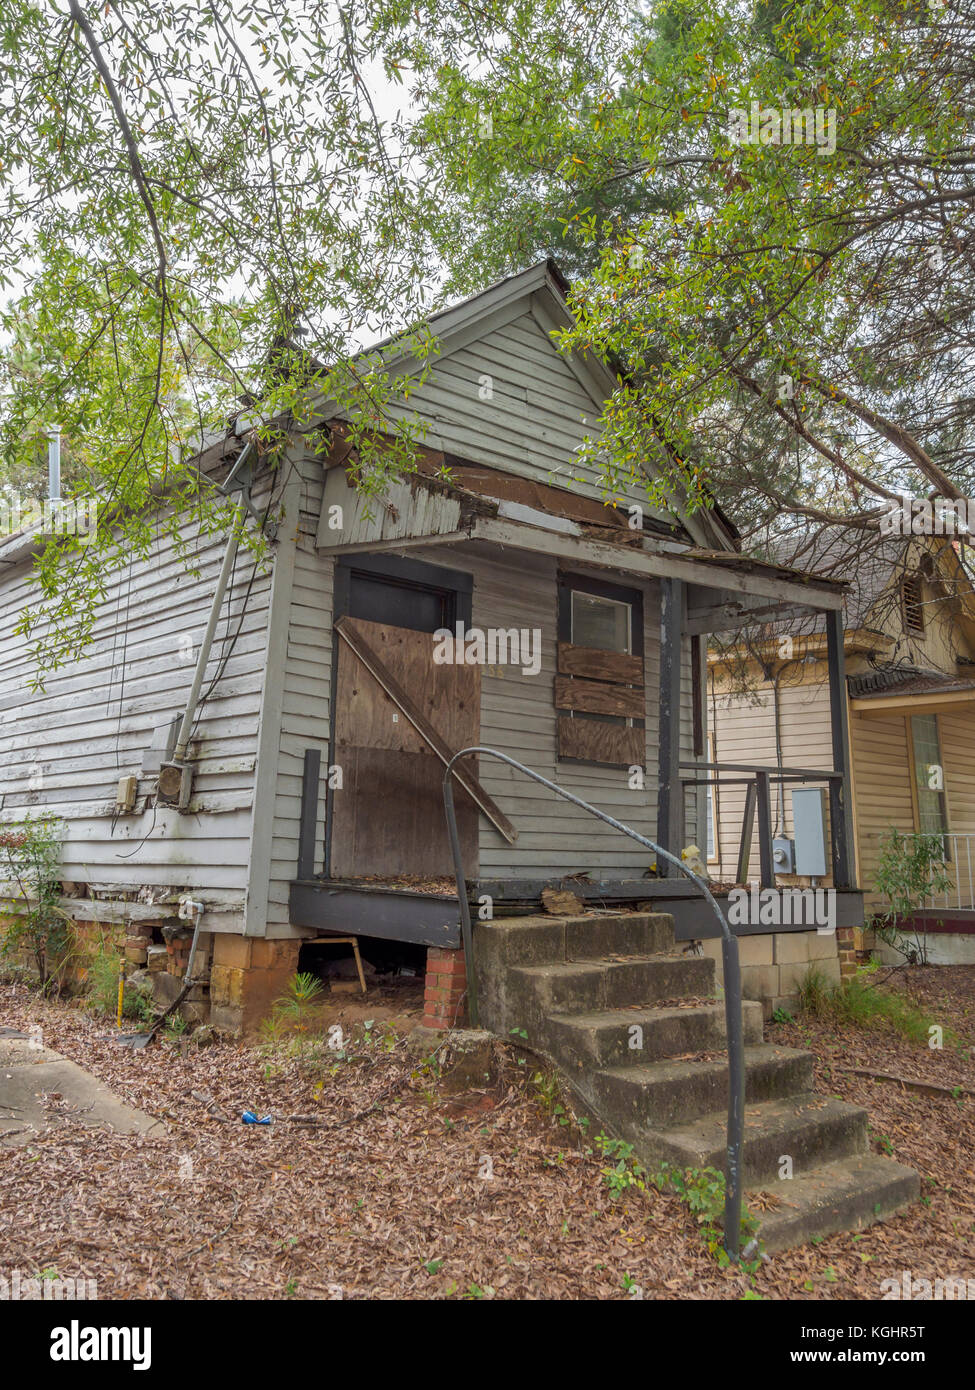 Boarded up, abandoned, house in urban decline, decay, blight, and American poverty in Montgomery, Alabama USA. - Stock Image